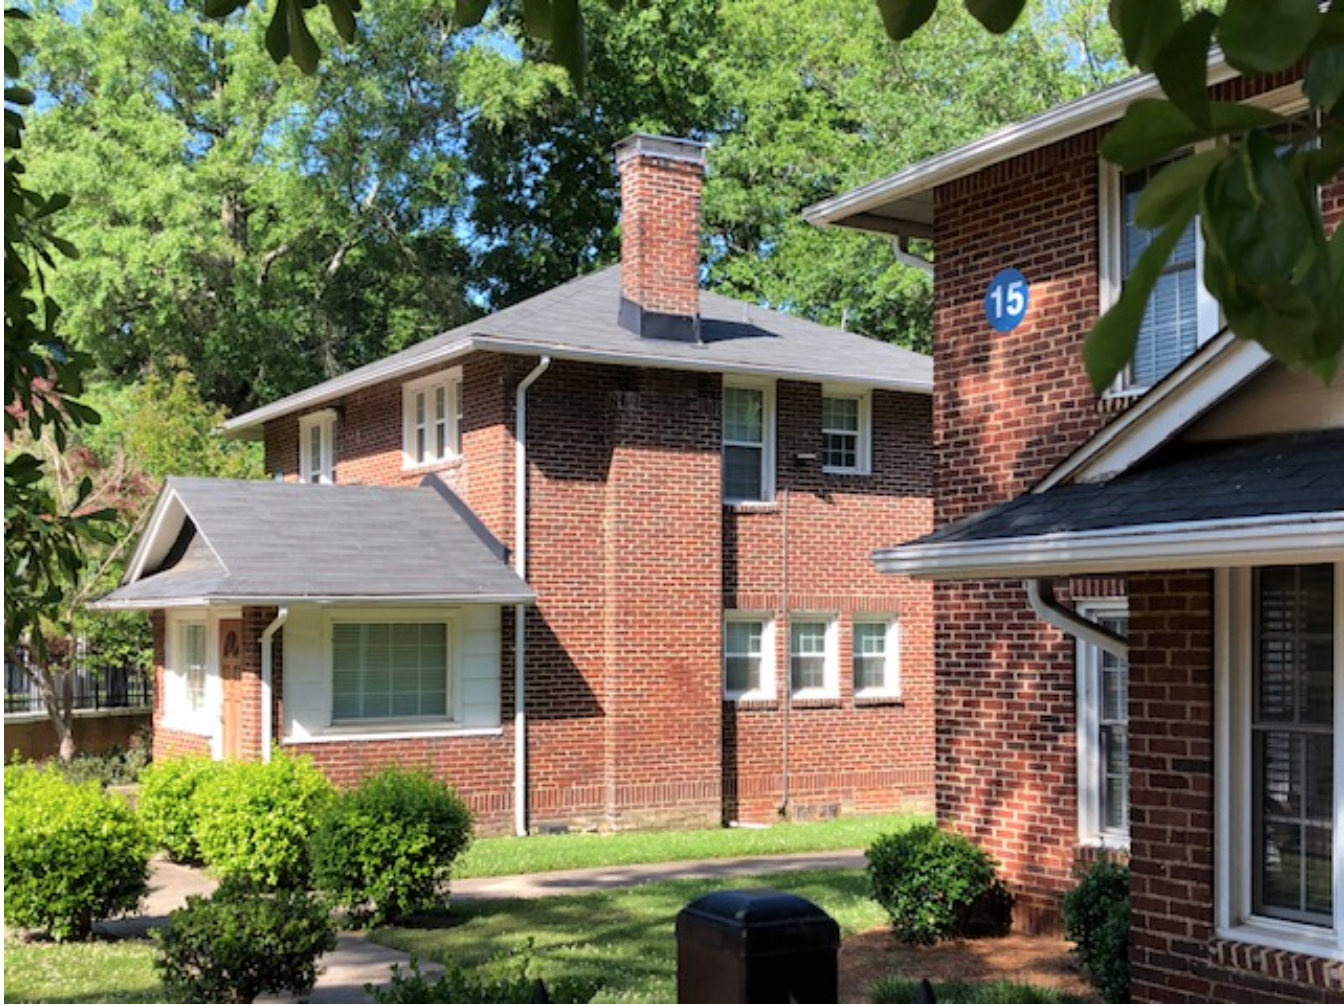 Small liberal arts colleges, especially African American ones, often had scant cash to pay the salaries of teachers back in the day. So sometimes they provided housing. These two sturdy brick dwellings for JCSU instructors date from the 1920s.